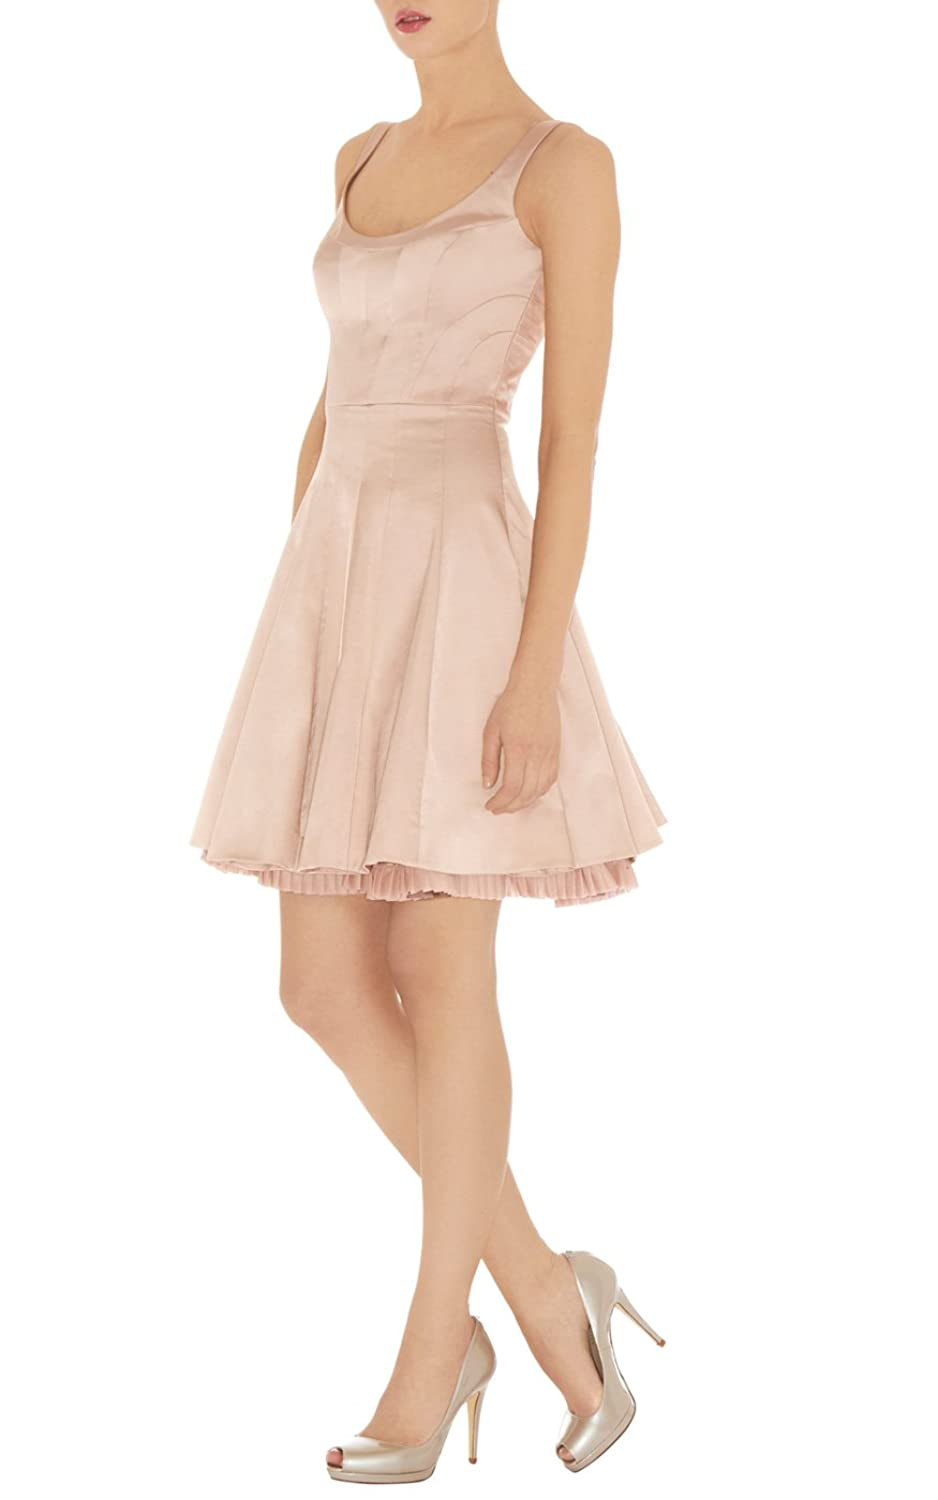 Karen Millen pale pink prom dress DQ281